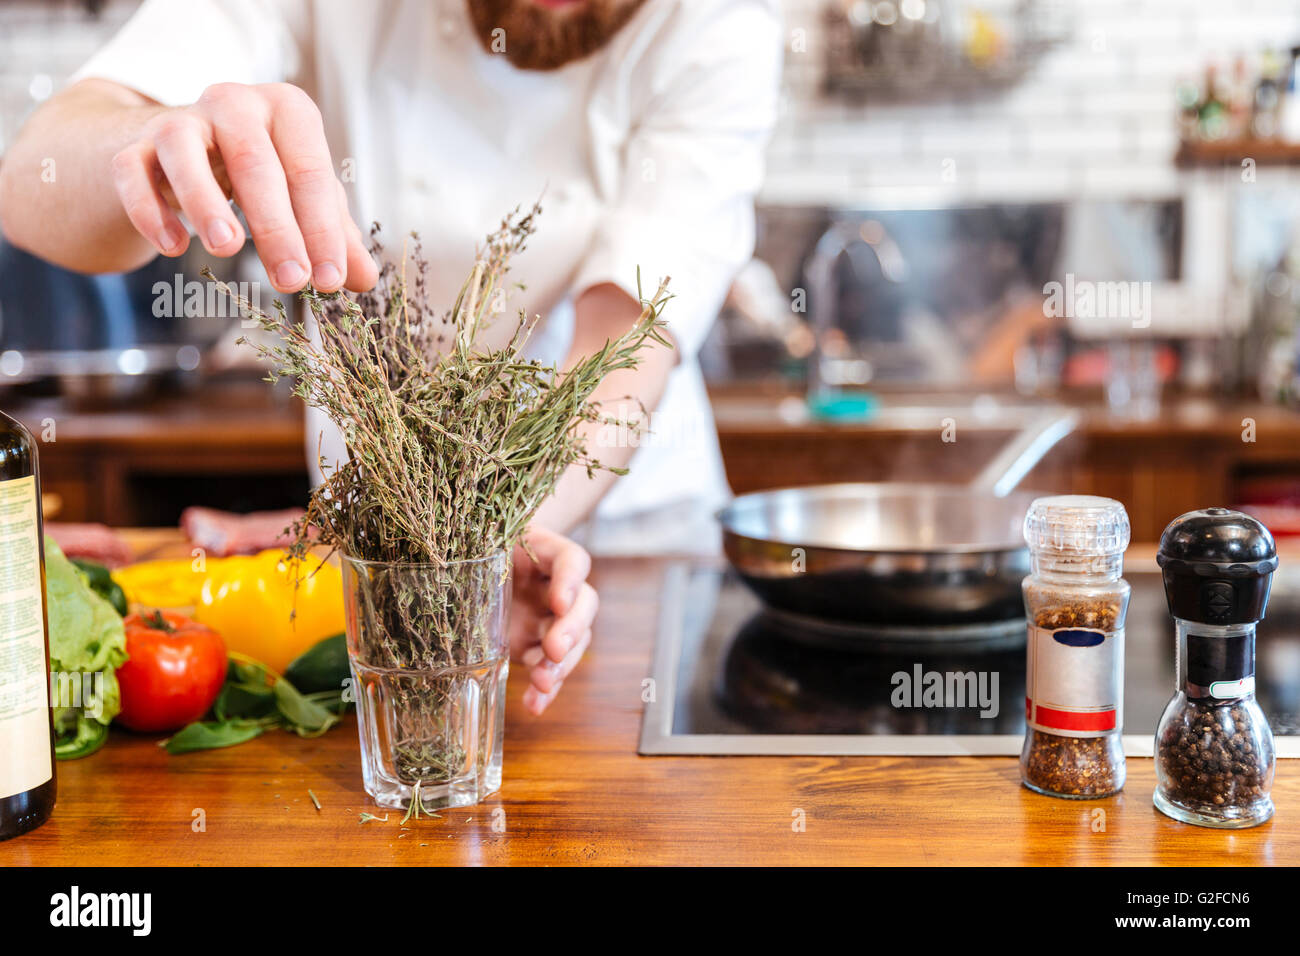 Cropped image of a chef cook preparing food in the kitchen - Stock Image